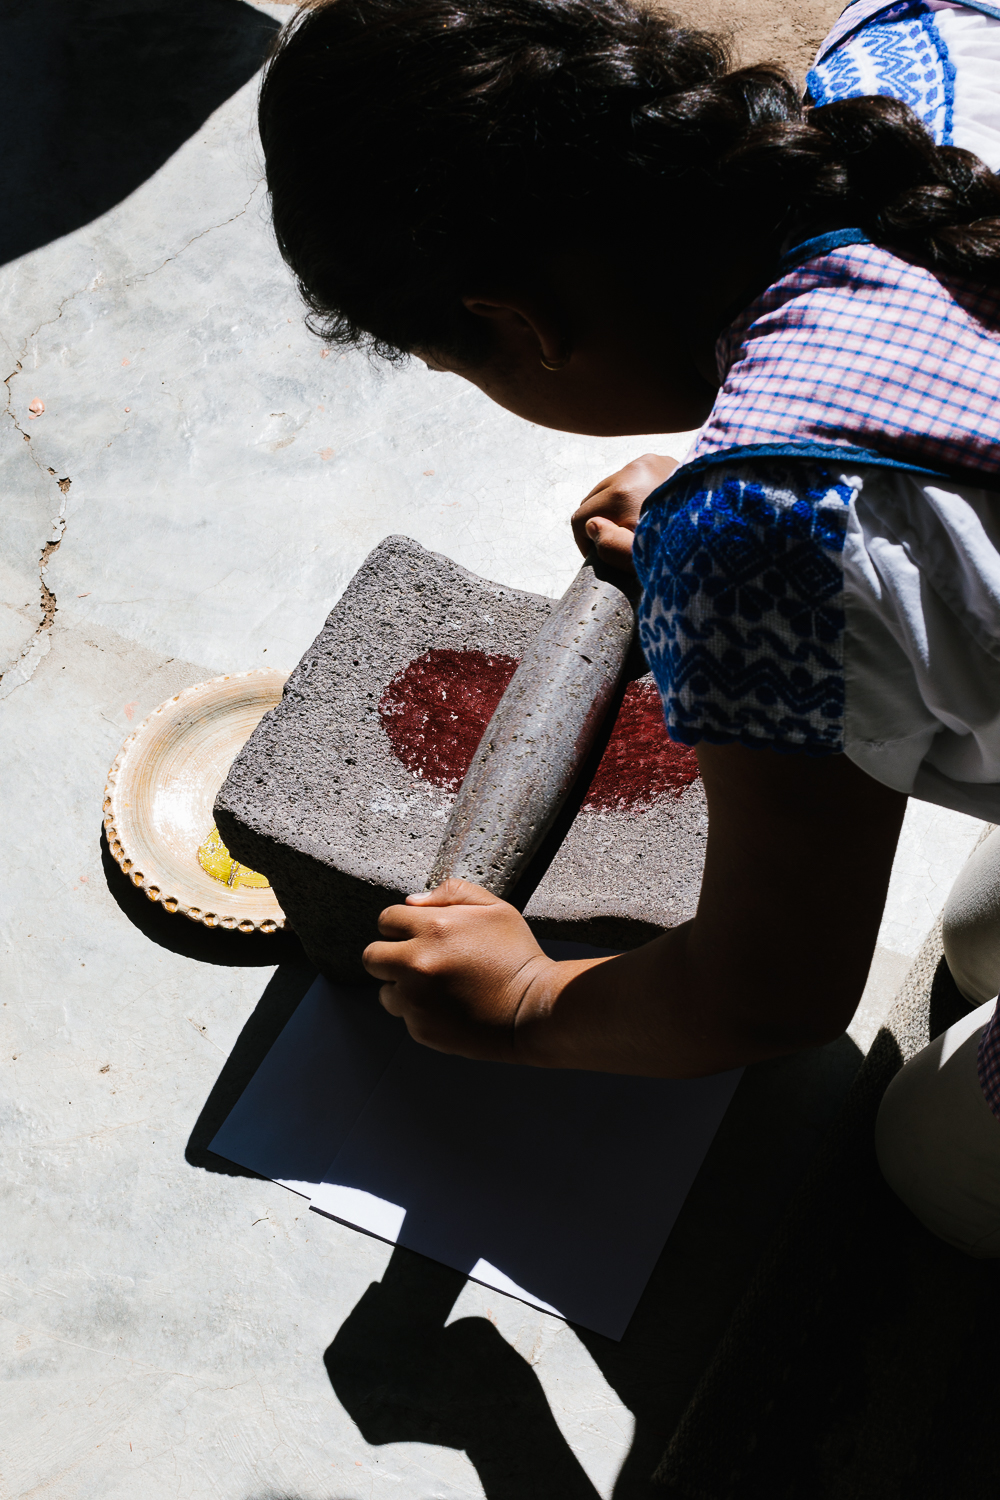 Cochineal on the metate being ground for natural dyeing.